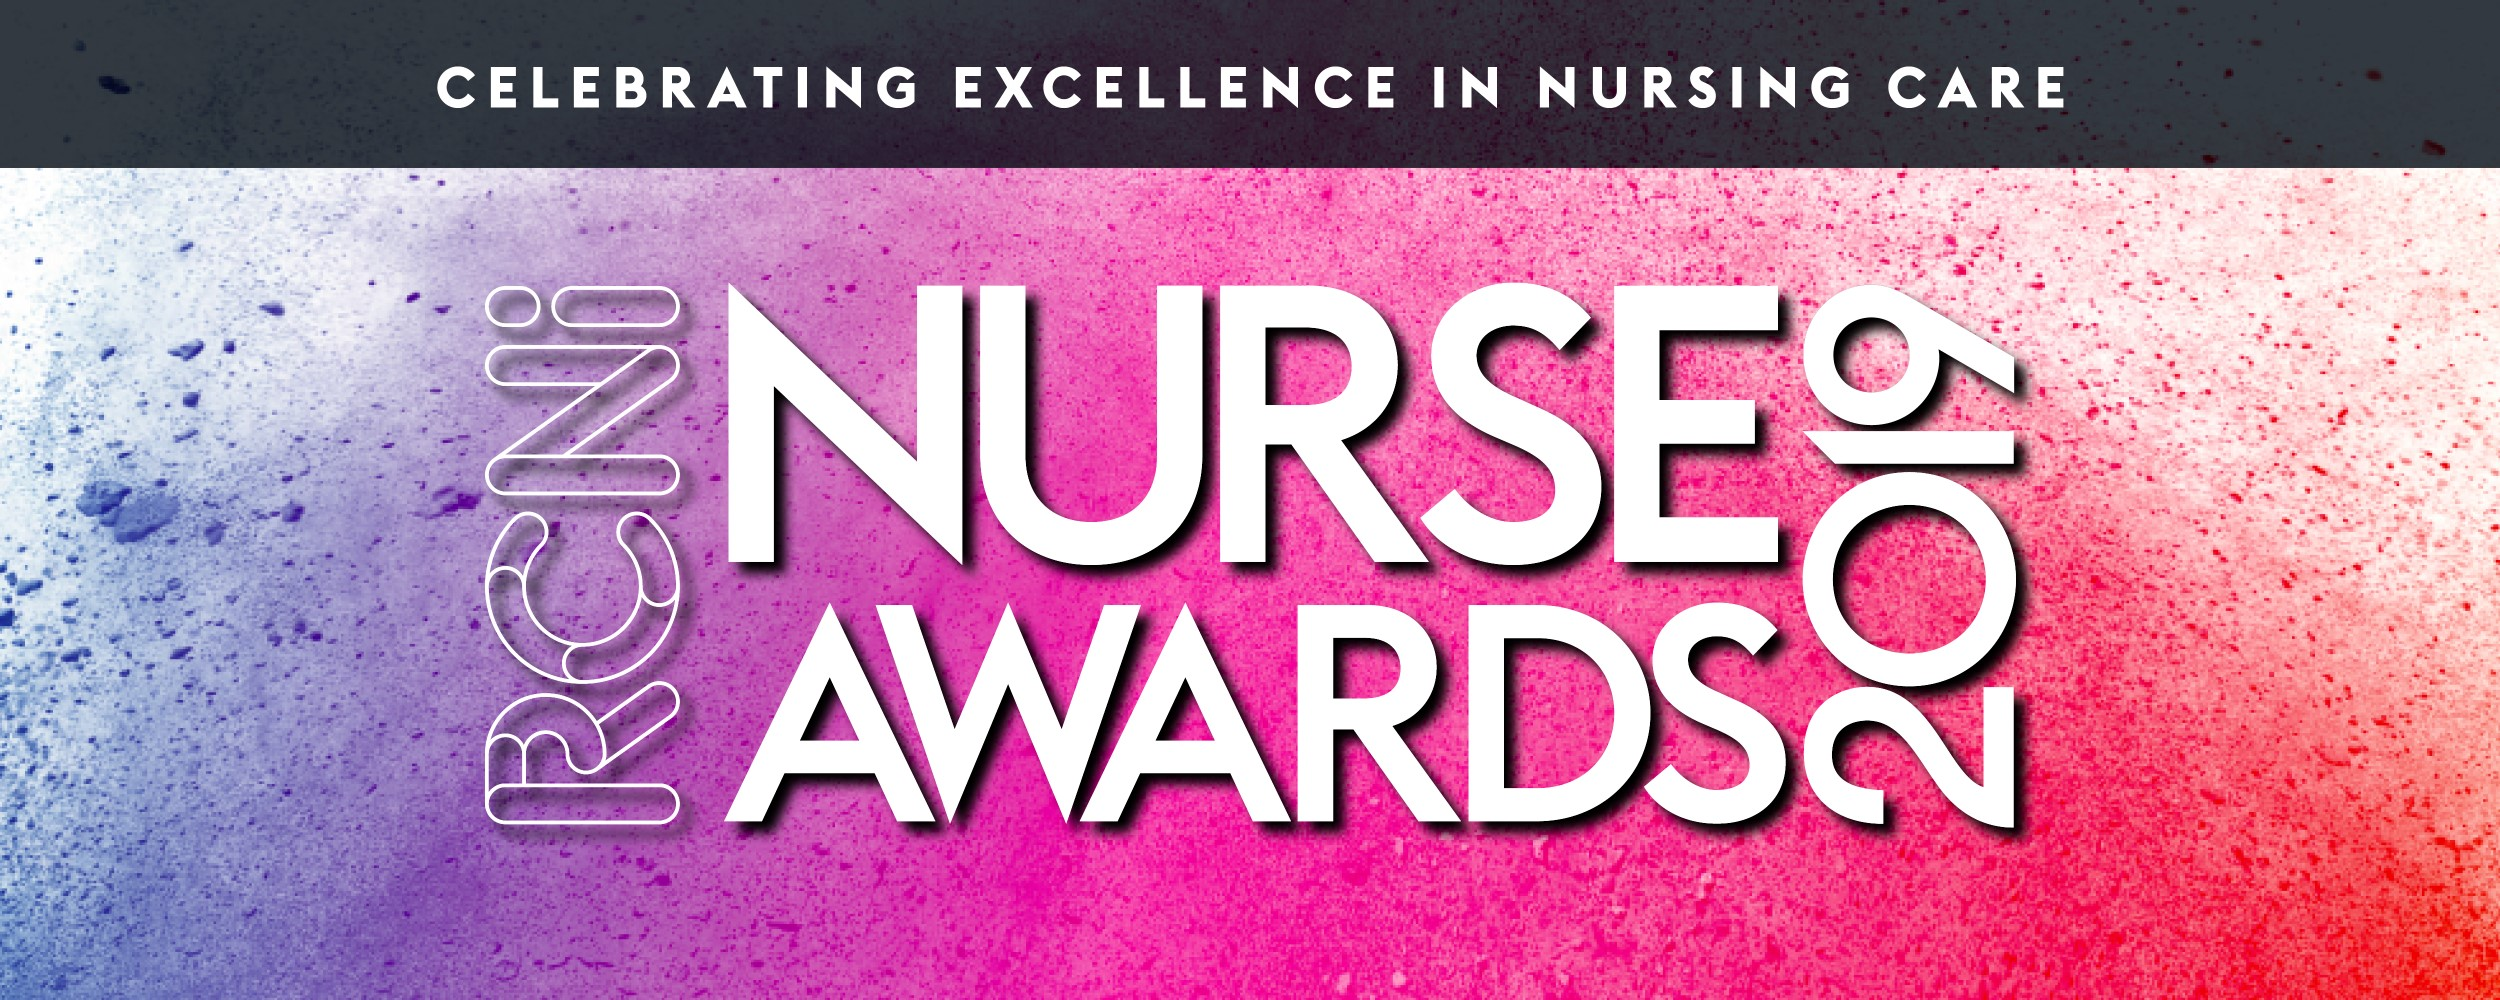 RCNi Nurse Awards